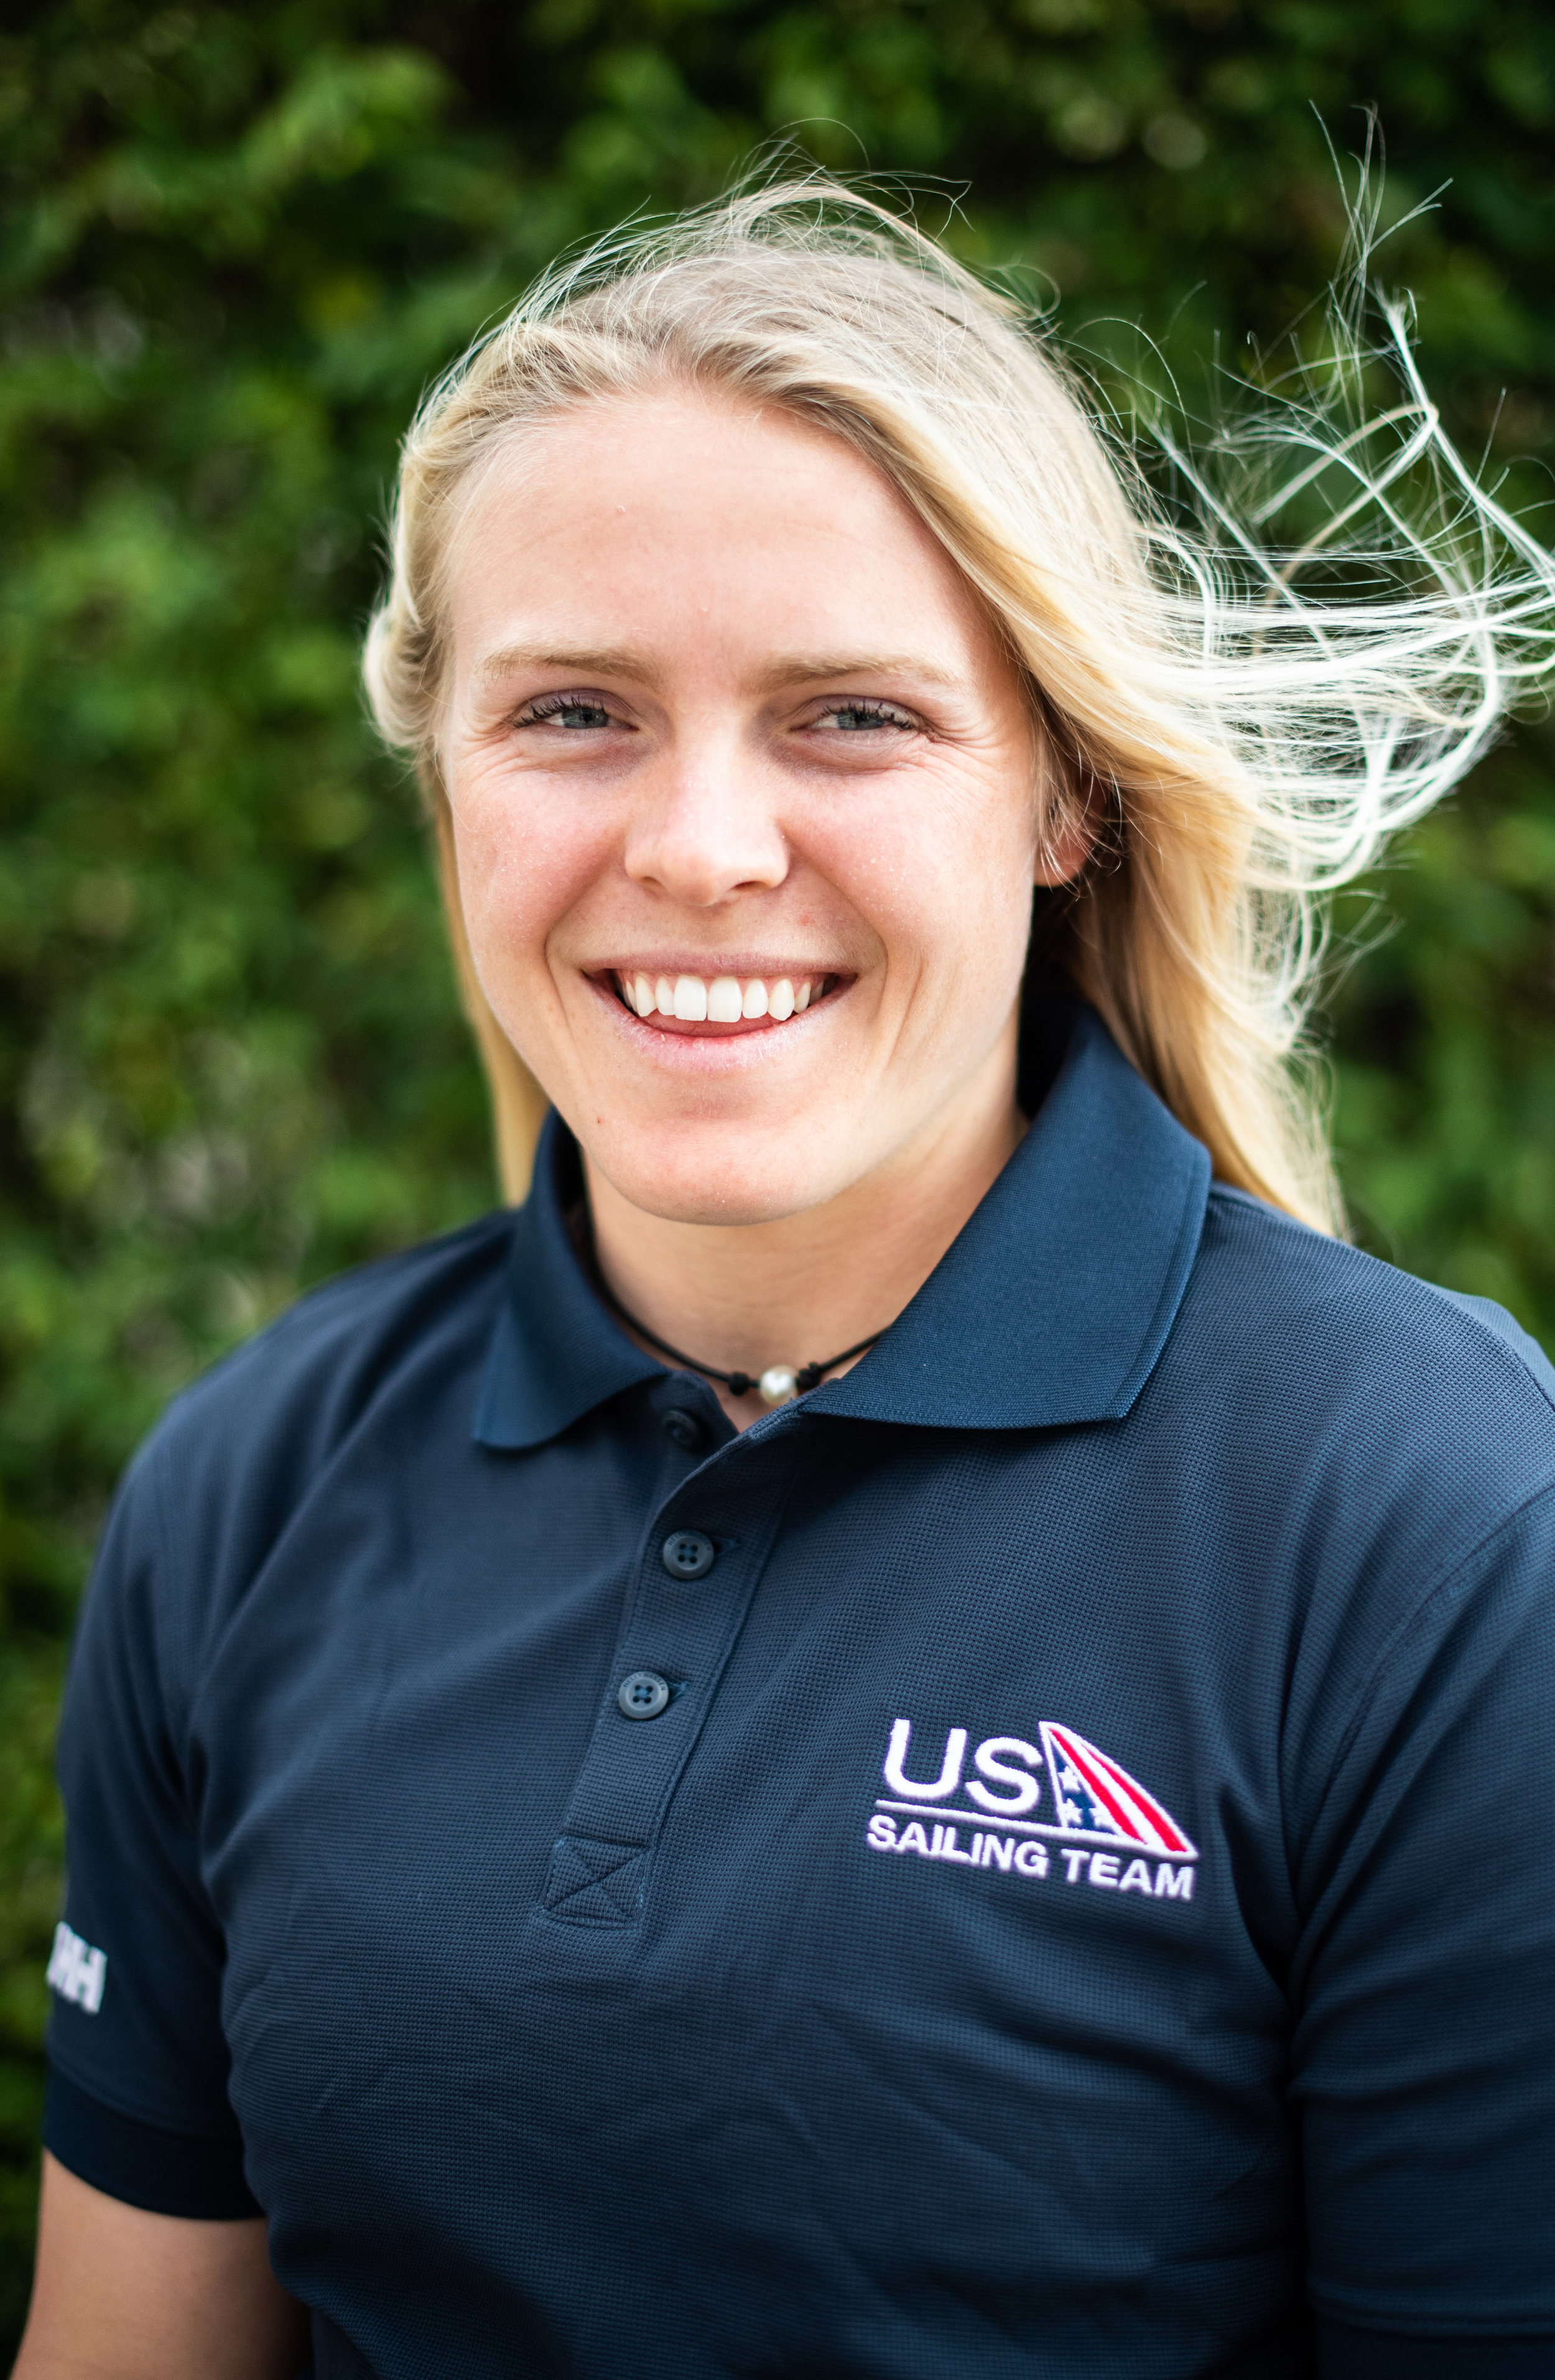 Anna Weis - Anna (20 yrs old) is a member of the 2019 US Sailing Team. She finished top ten at two Radial Youth Worlds and was the 2016 Women's Radial National Champion. She is also a member of the Boston University Rowing Team.